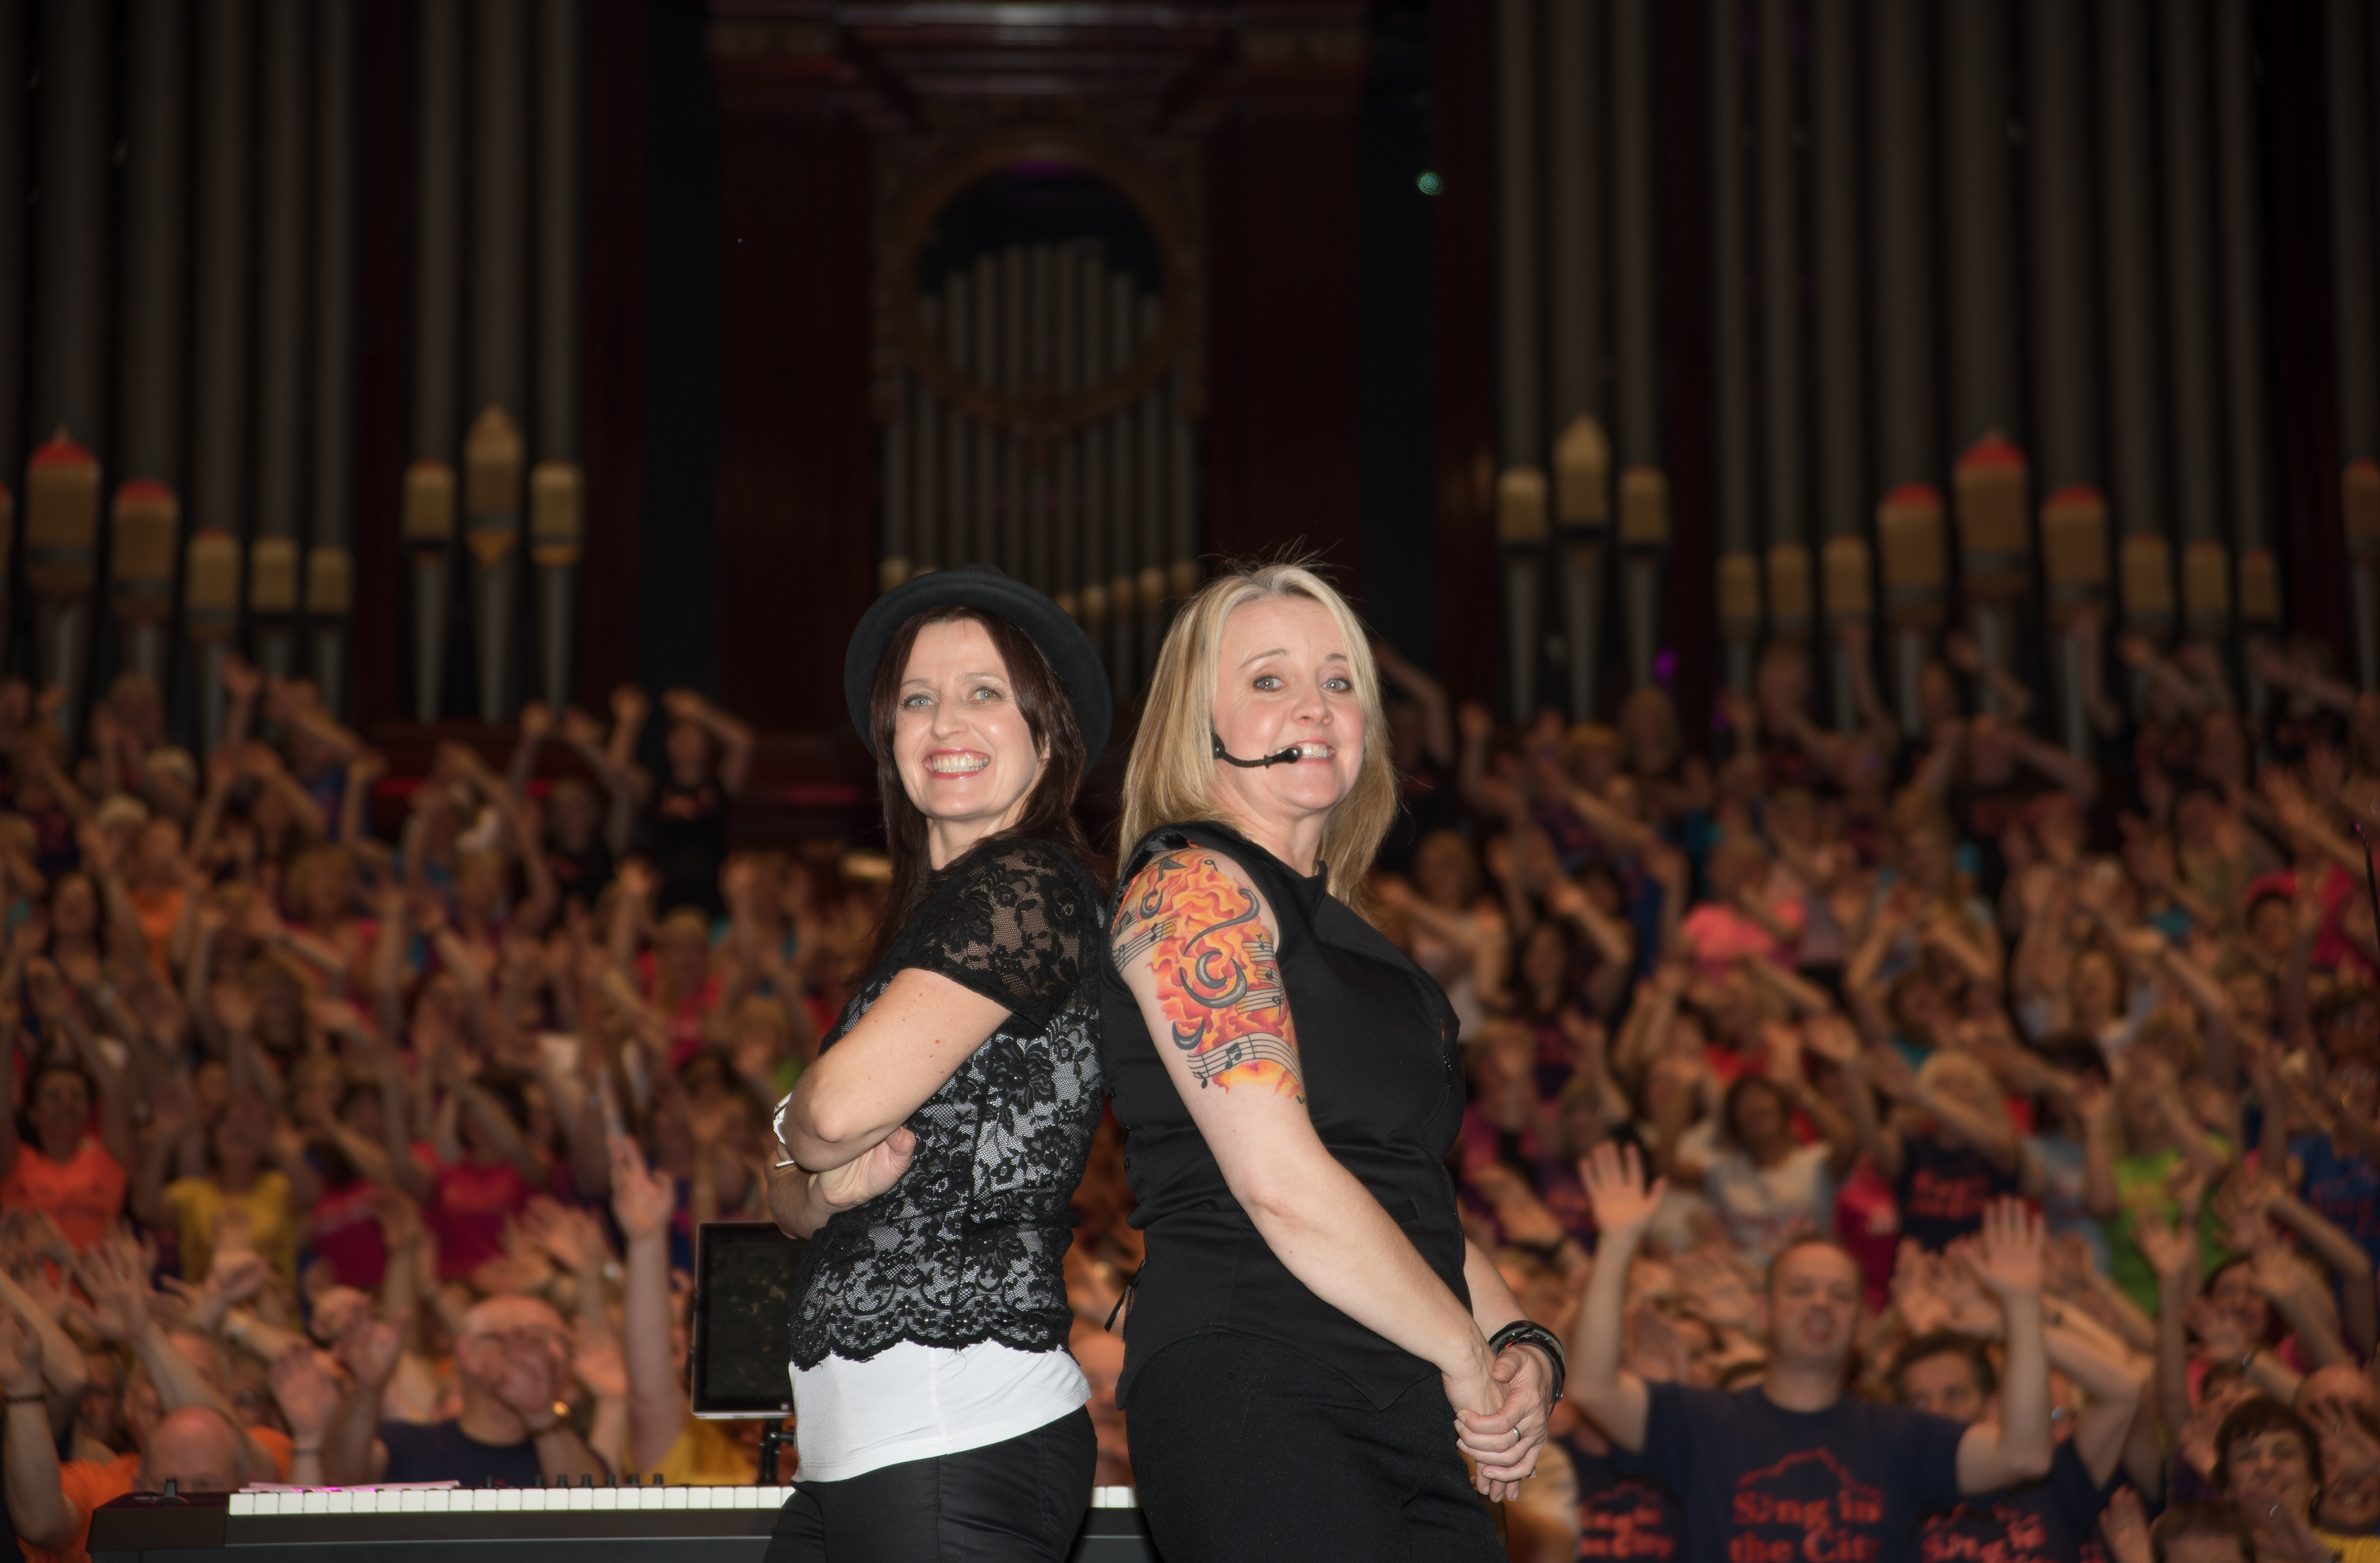 Sing in the City managing directors Kirsty Baird and Annette Hanley.